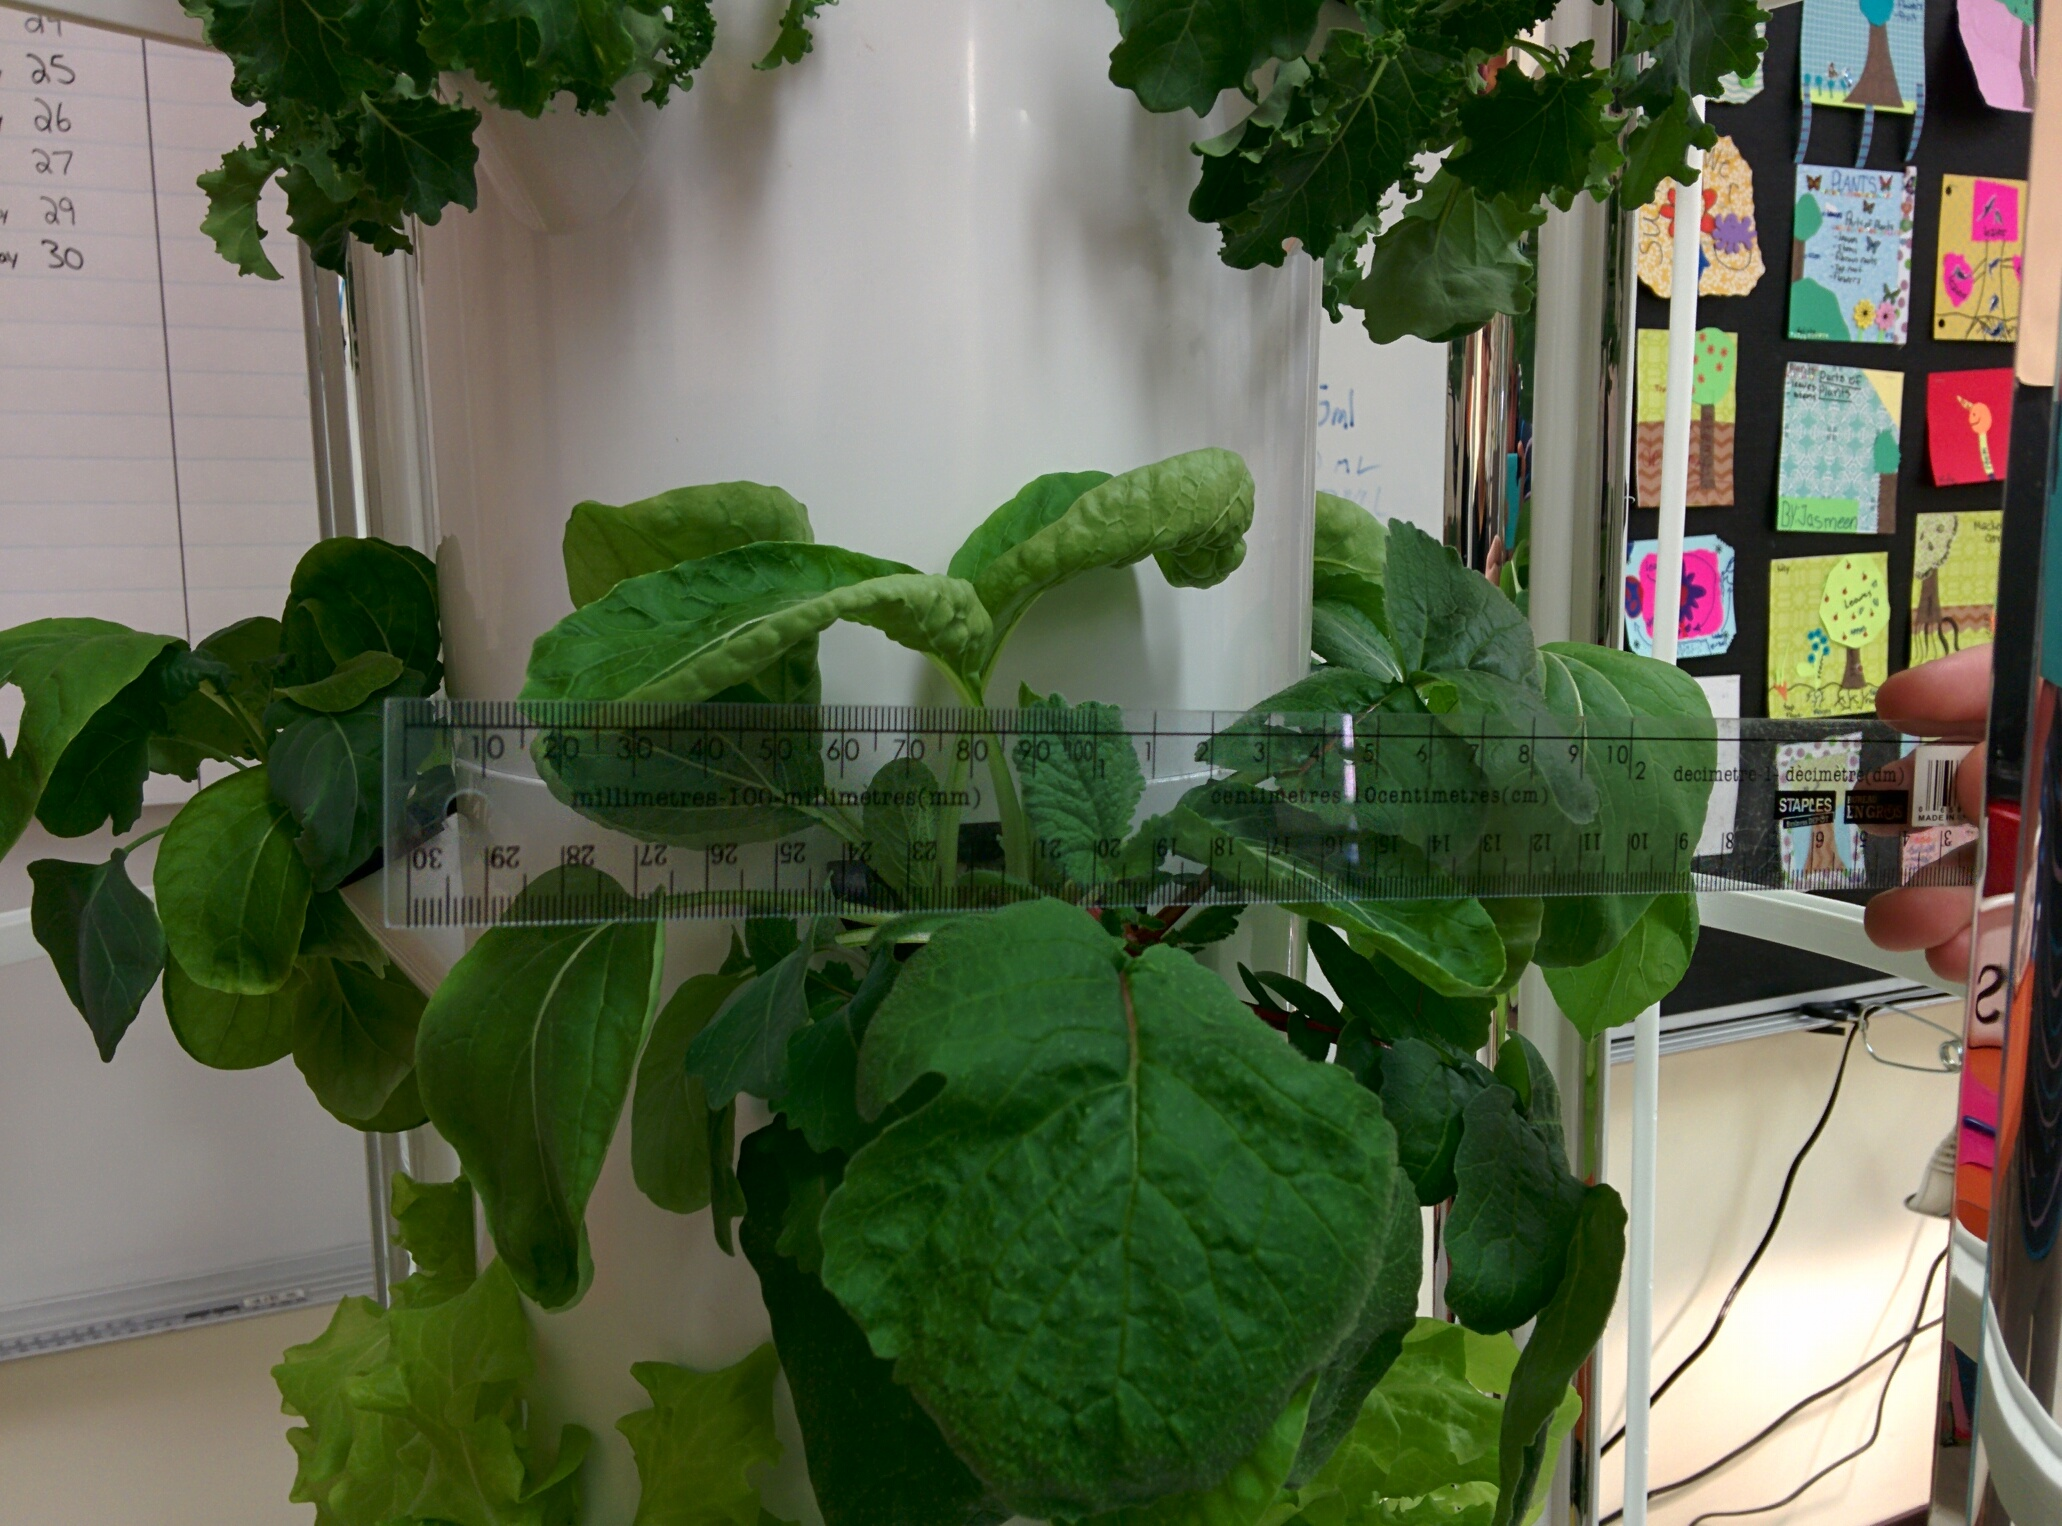 Aeroponic Versus Traditional Gardening Our Canada Project